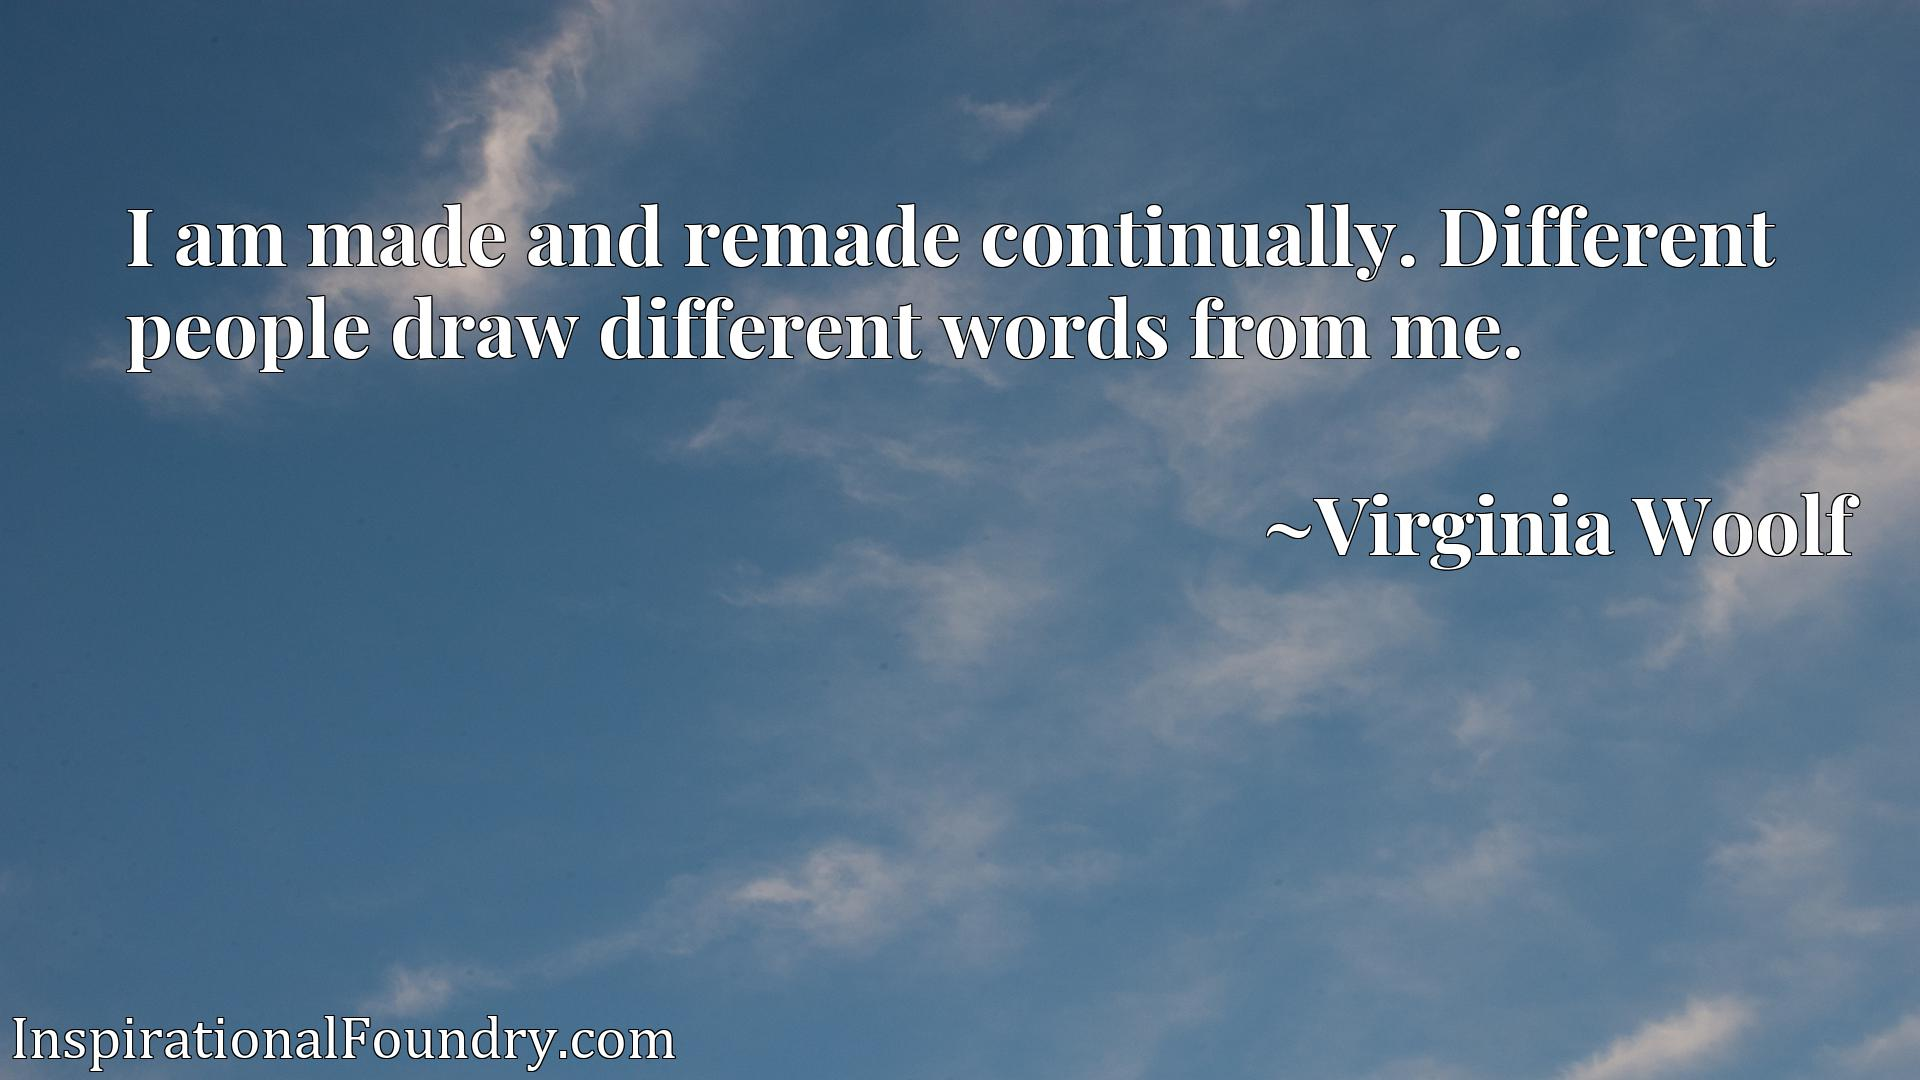 I am made and remade continually. Different people draw different words from me.